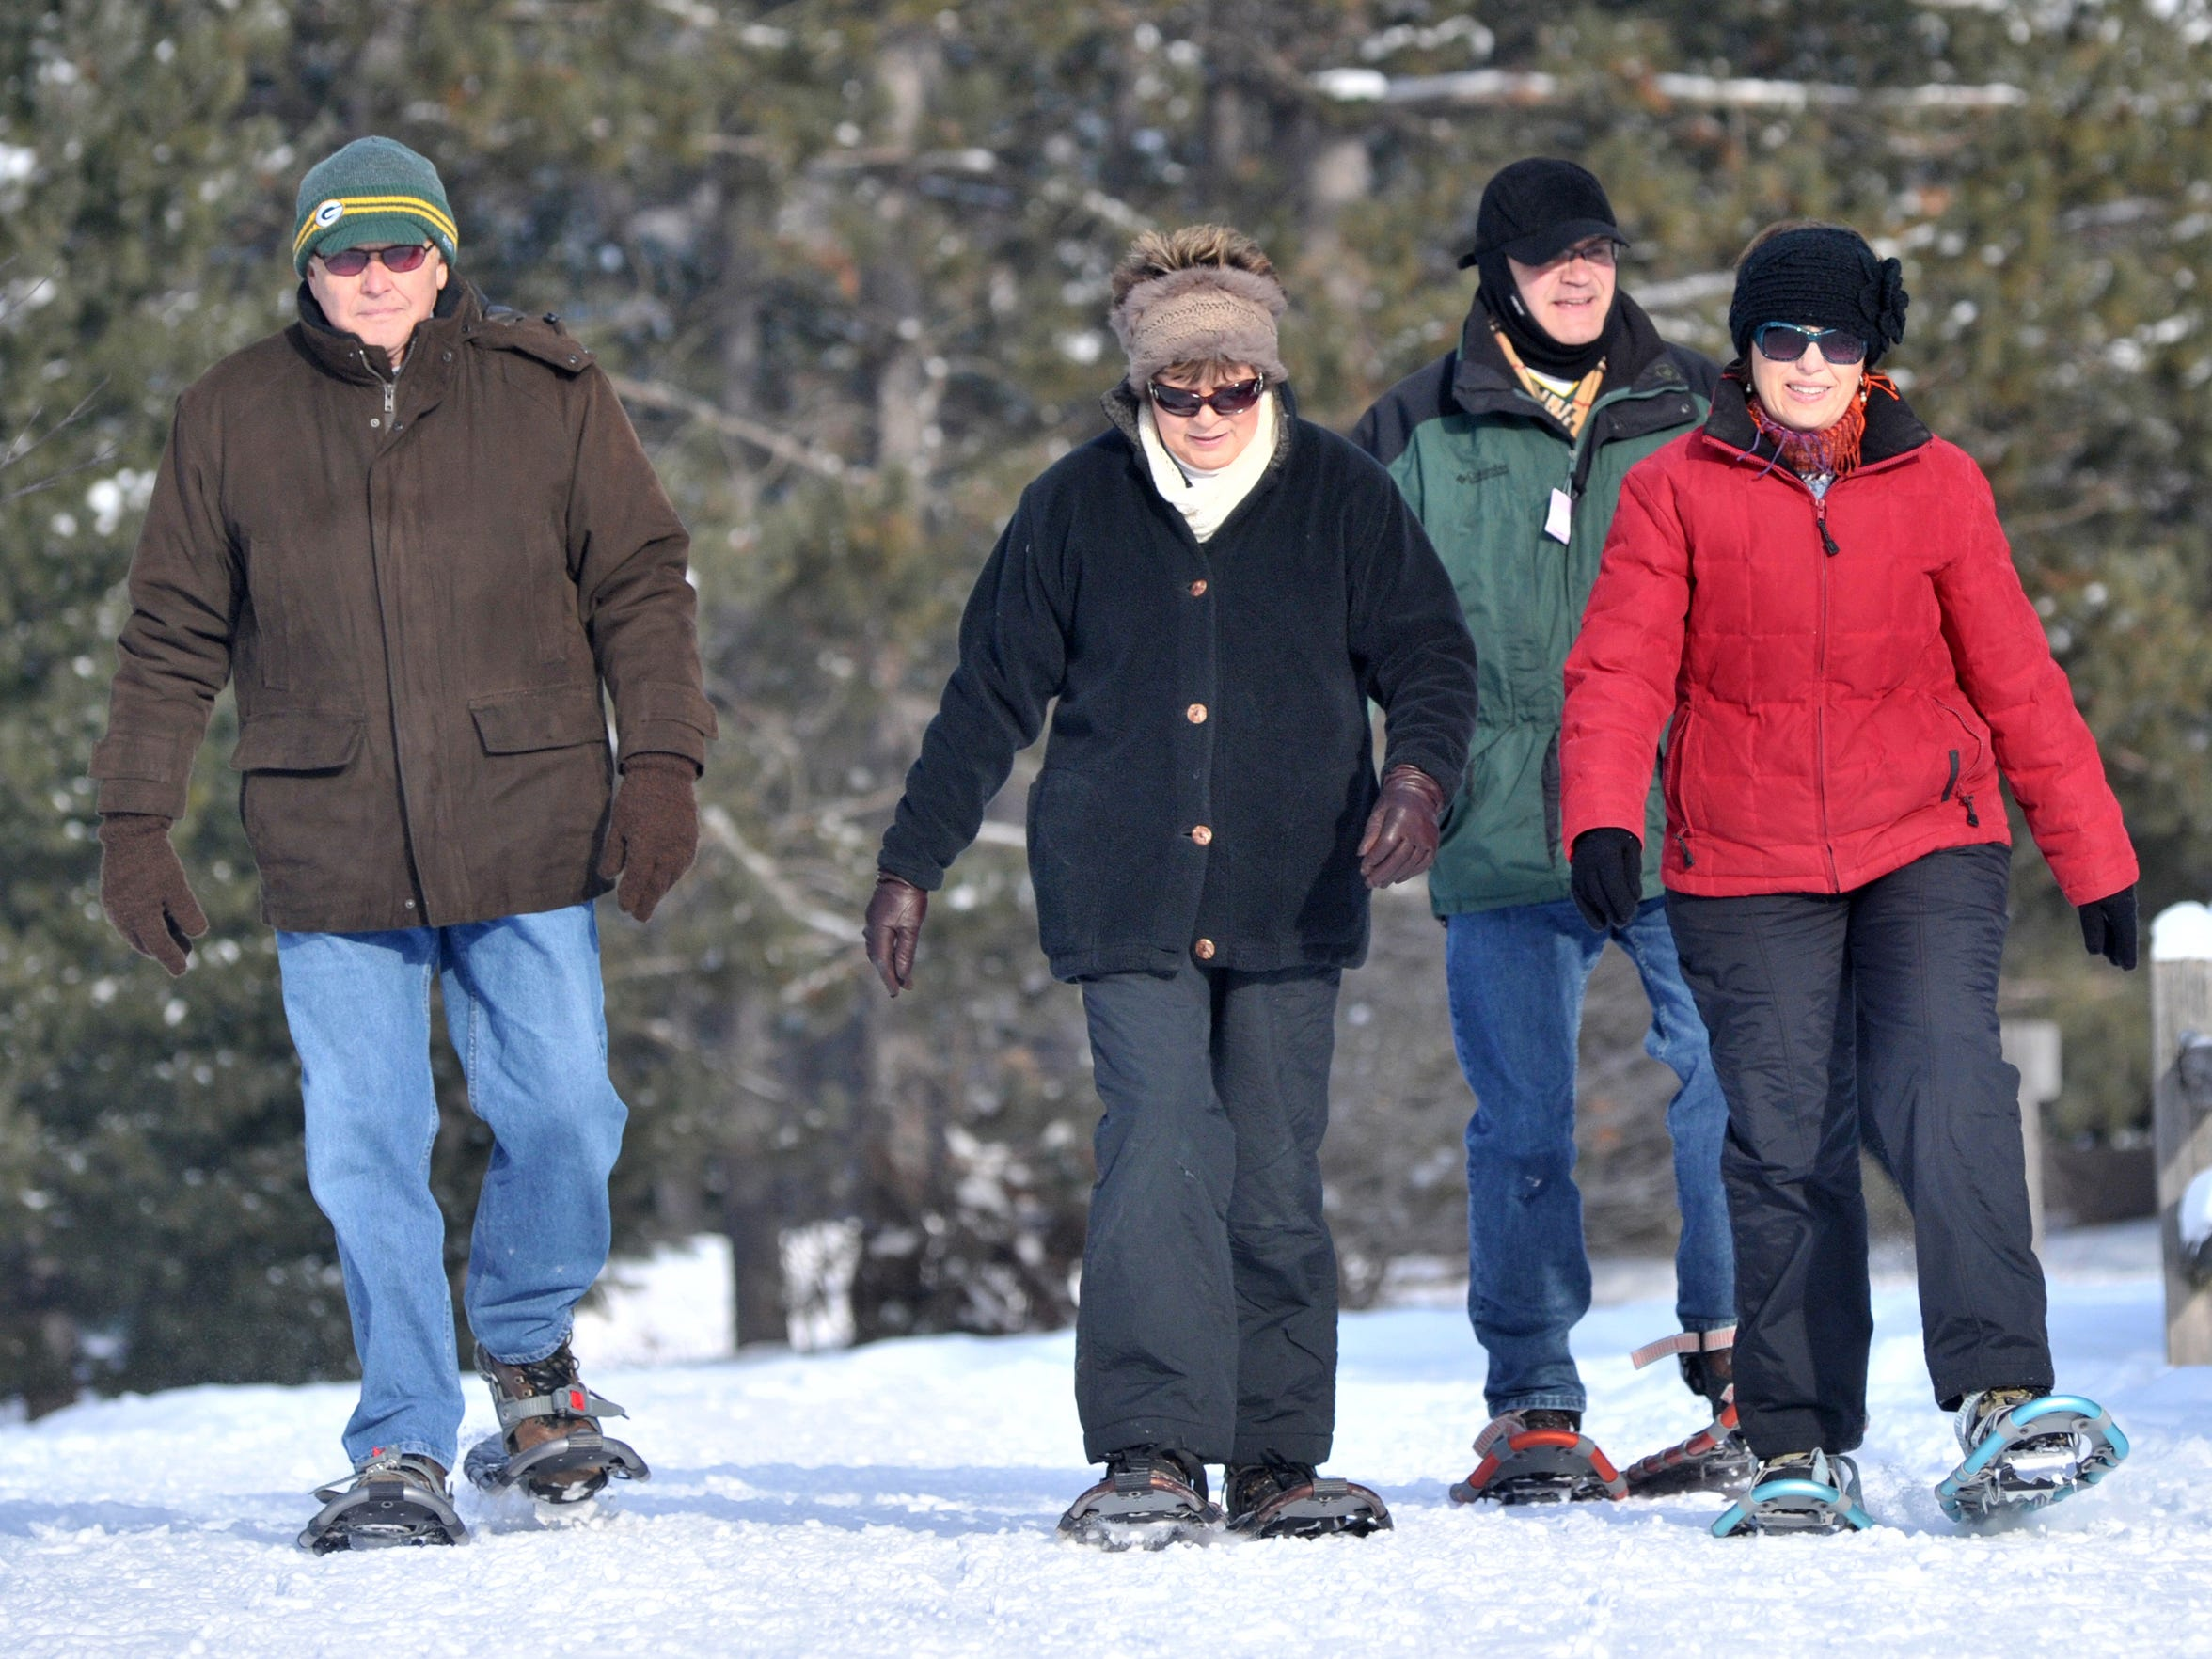 In this file photo, a group of people snowshoe on Dec. 30, 2012, at Nine Mile Recreation Area in Rib Mountain.